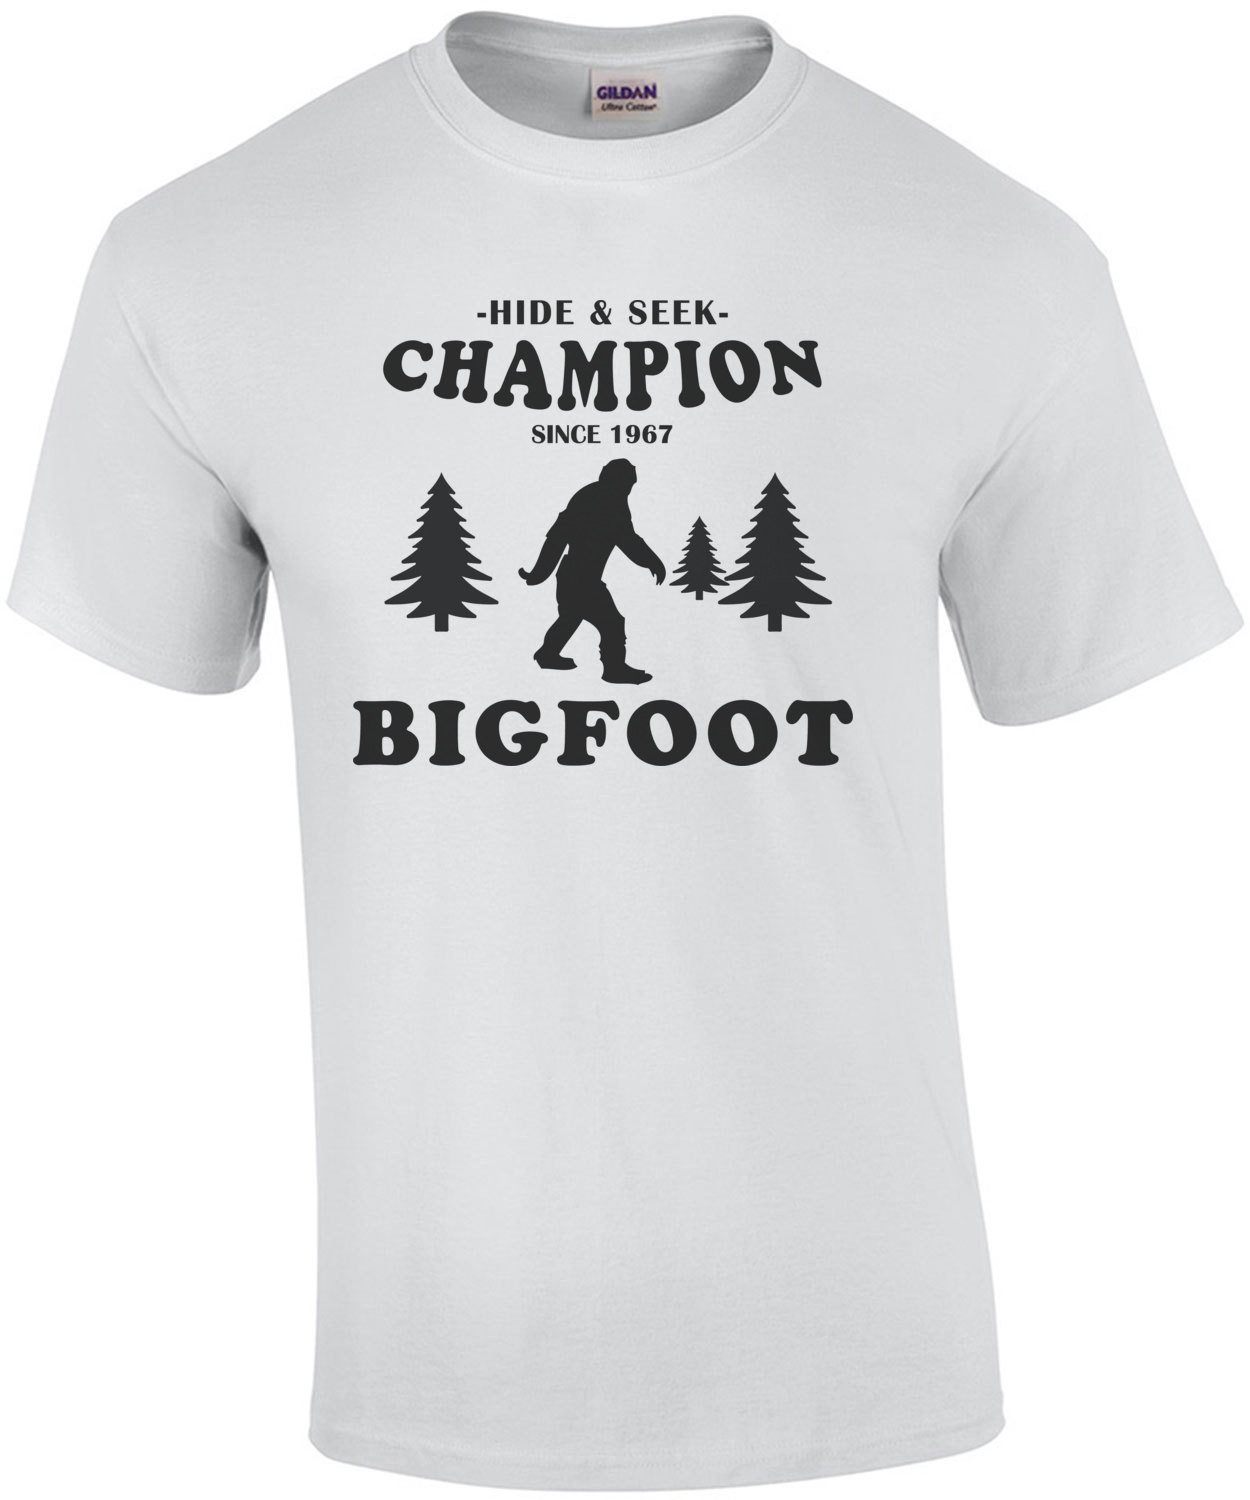 Hide & Seek Champion Bigfoot T-Shirt